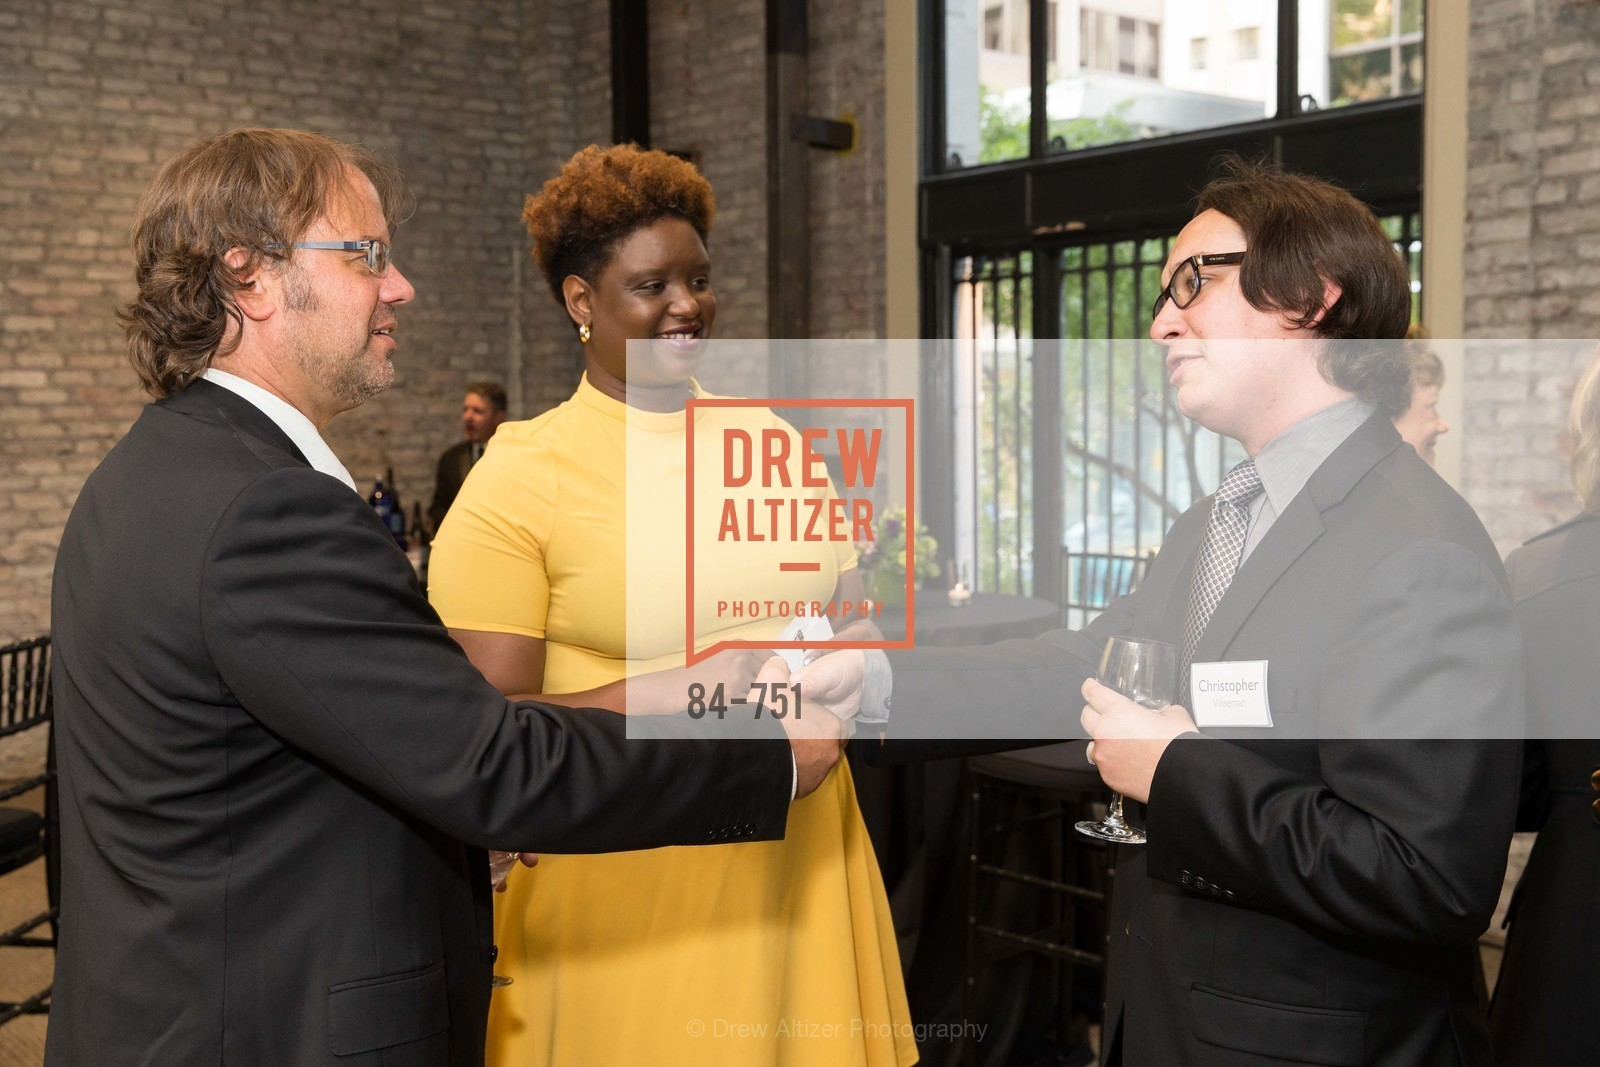 Todd Anthony, Tenya Steele, Christopher Wiseman, CENTER FOR ENVIRONMENTAL HEALTH (CEH) 2015 Gala, Bently Reserve, May 28th, 2015,Drew Altizer, Drew Altizer Photography, full-service agency, private events, San Francisco photographer, photographer california